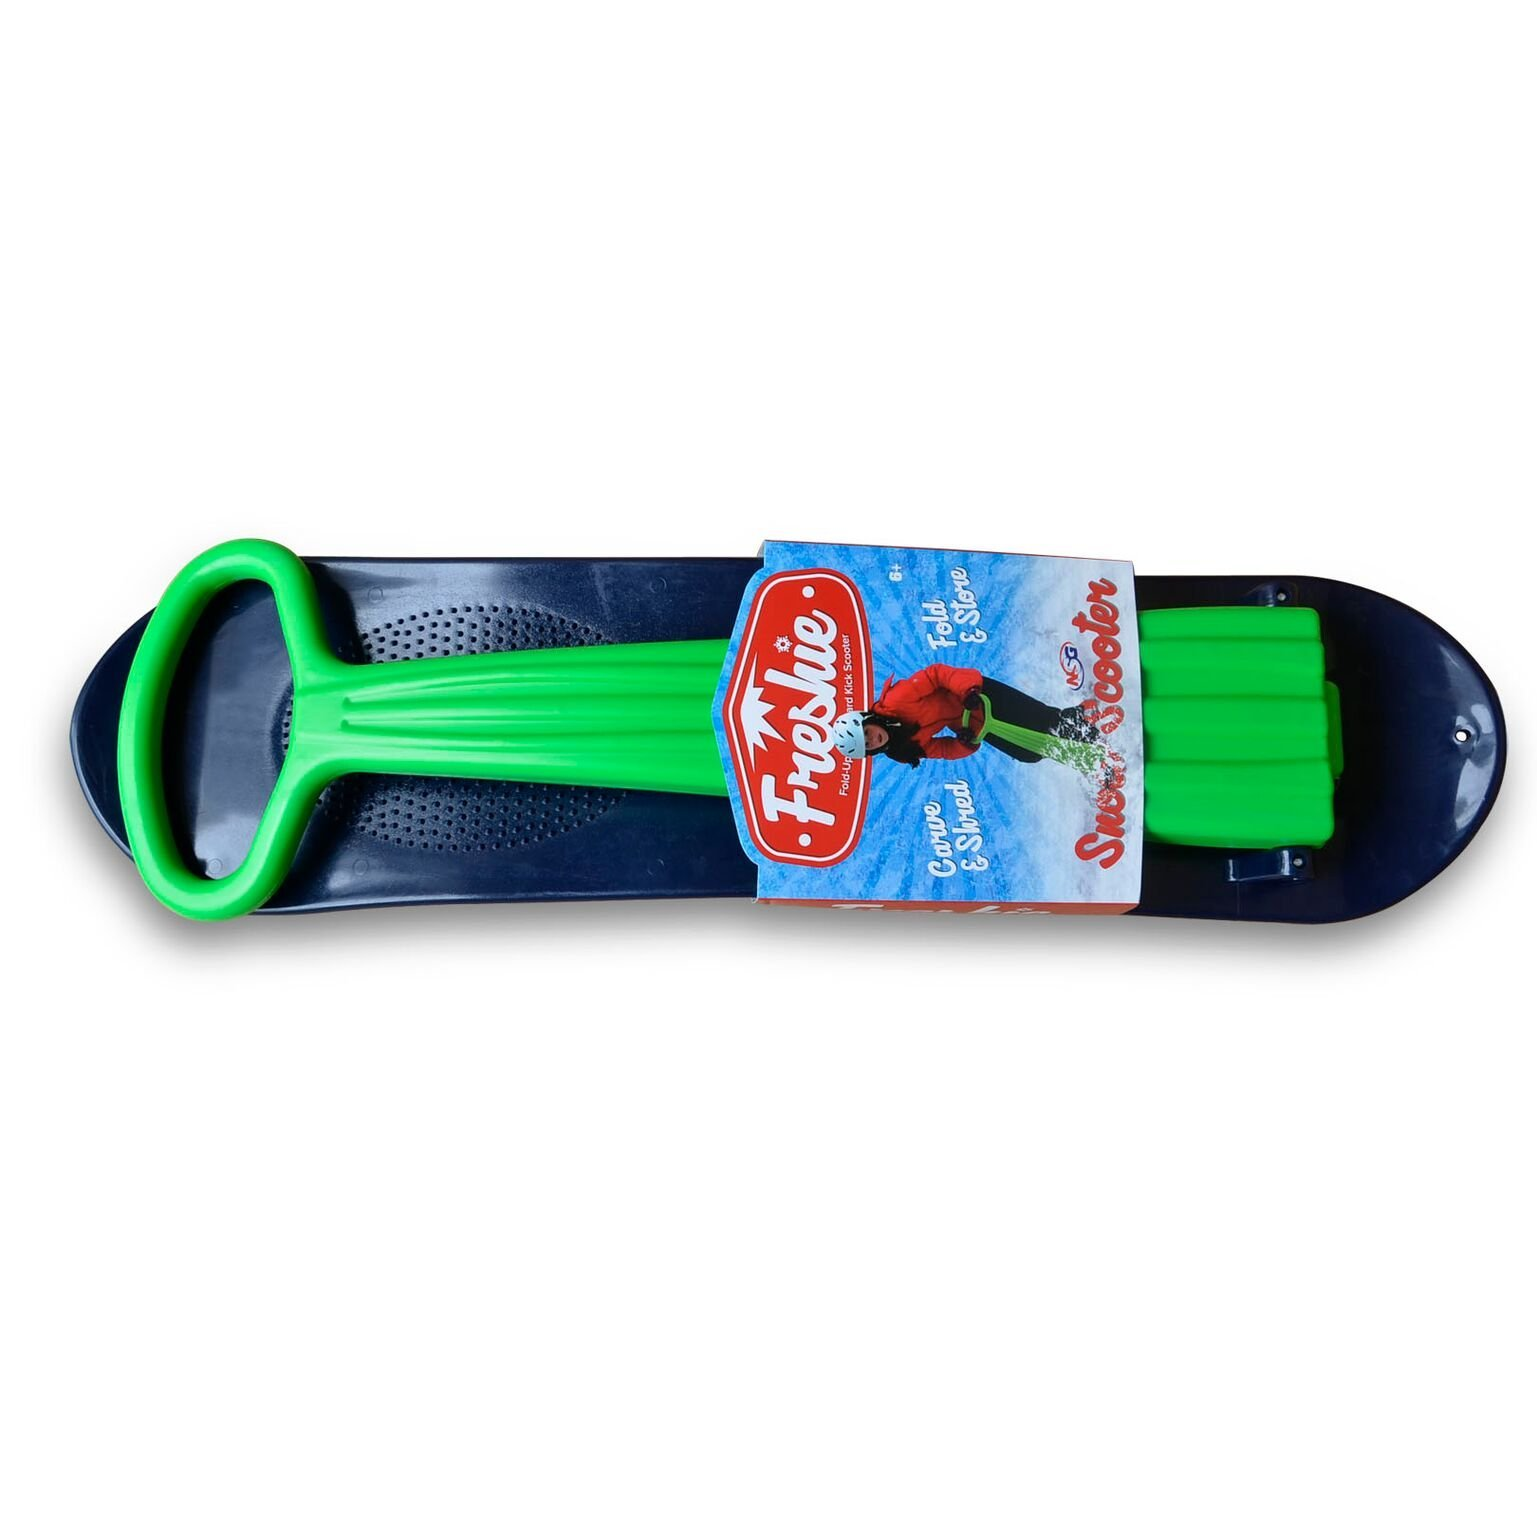 NSG Freshie Snow Scooter Sled Board, Green/Blue